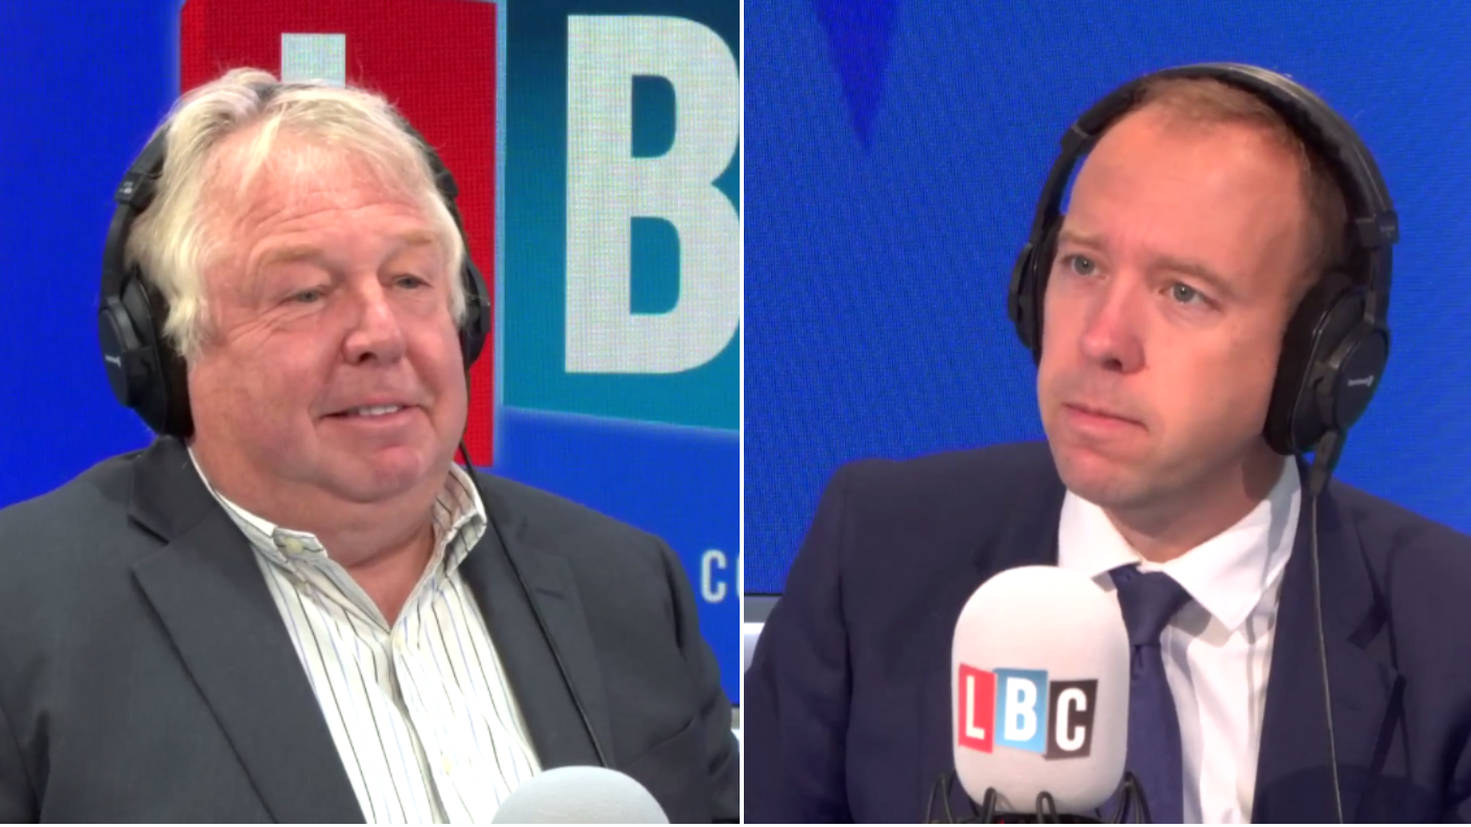 A Brexit Deal Is Now More Likely Than Not, Matt Hancock Tells LBC